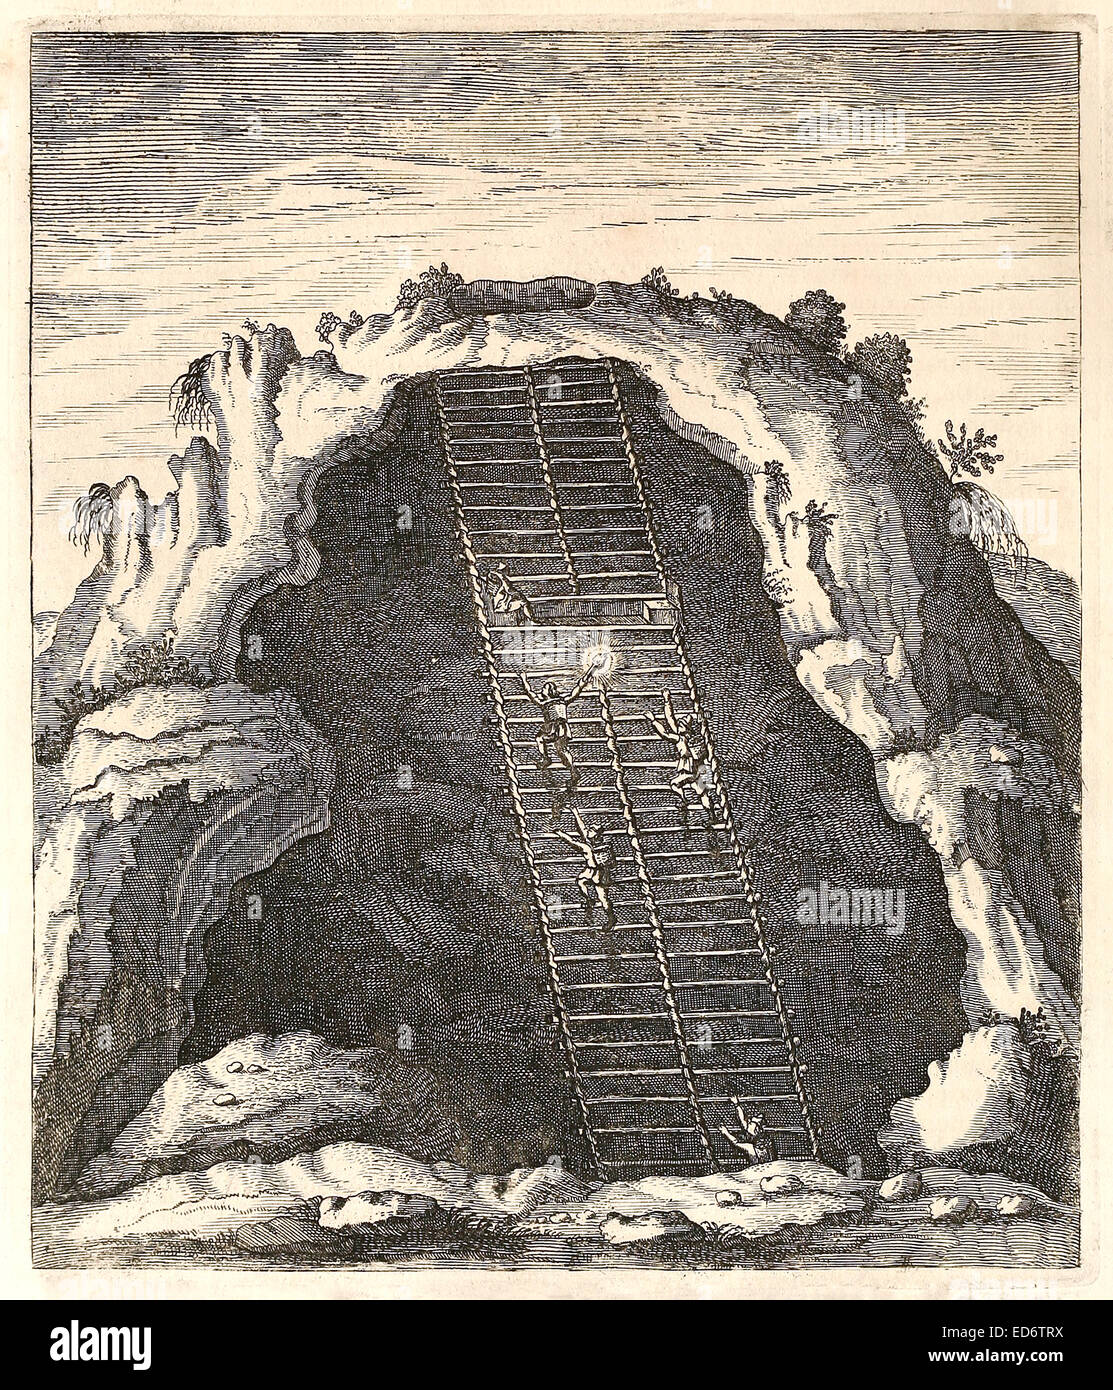 'Scalarum mira fabrica' 17th century illustration of ladder in the mines, probably Silver, of Peru featuring - Stock Image